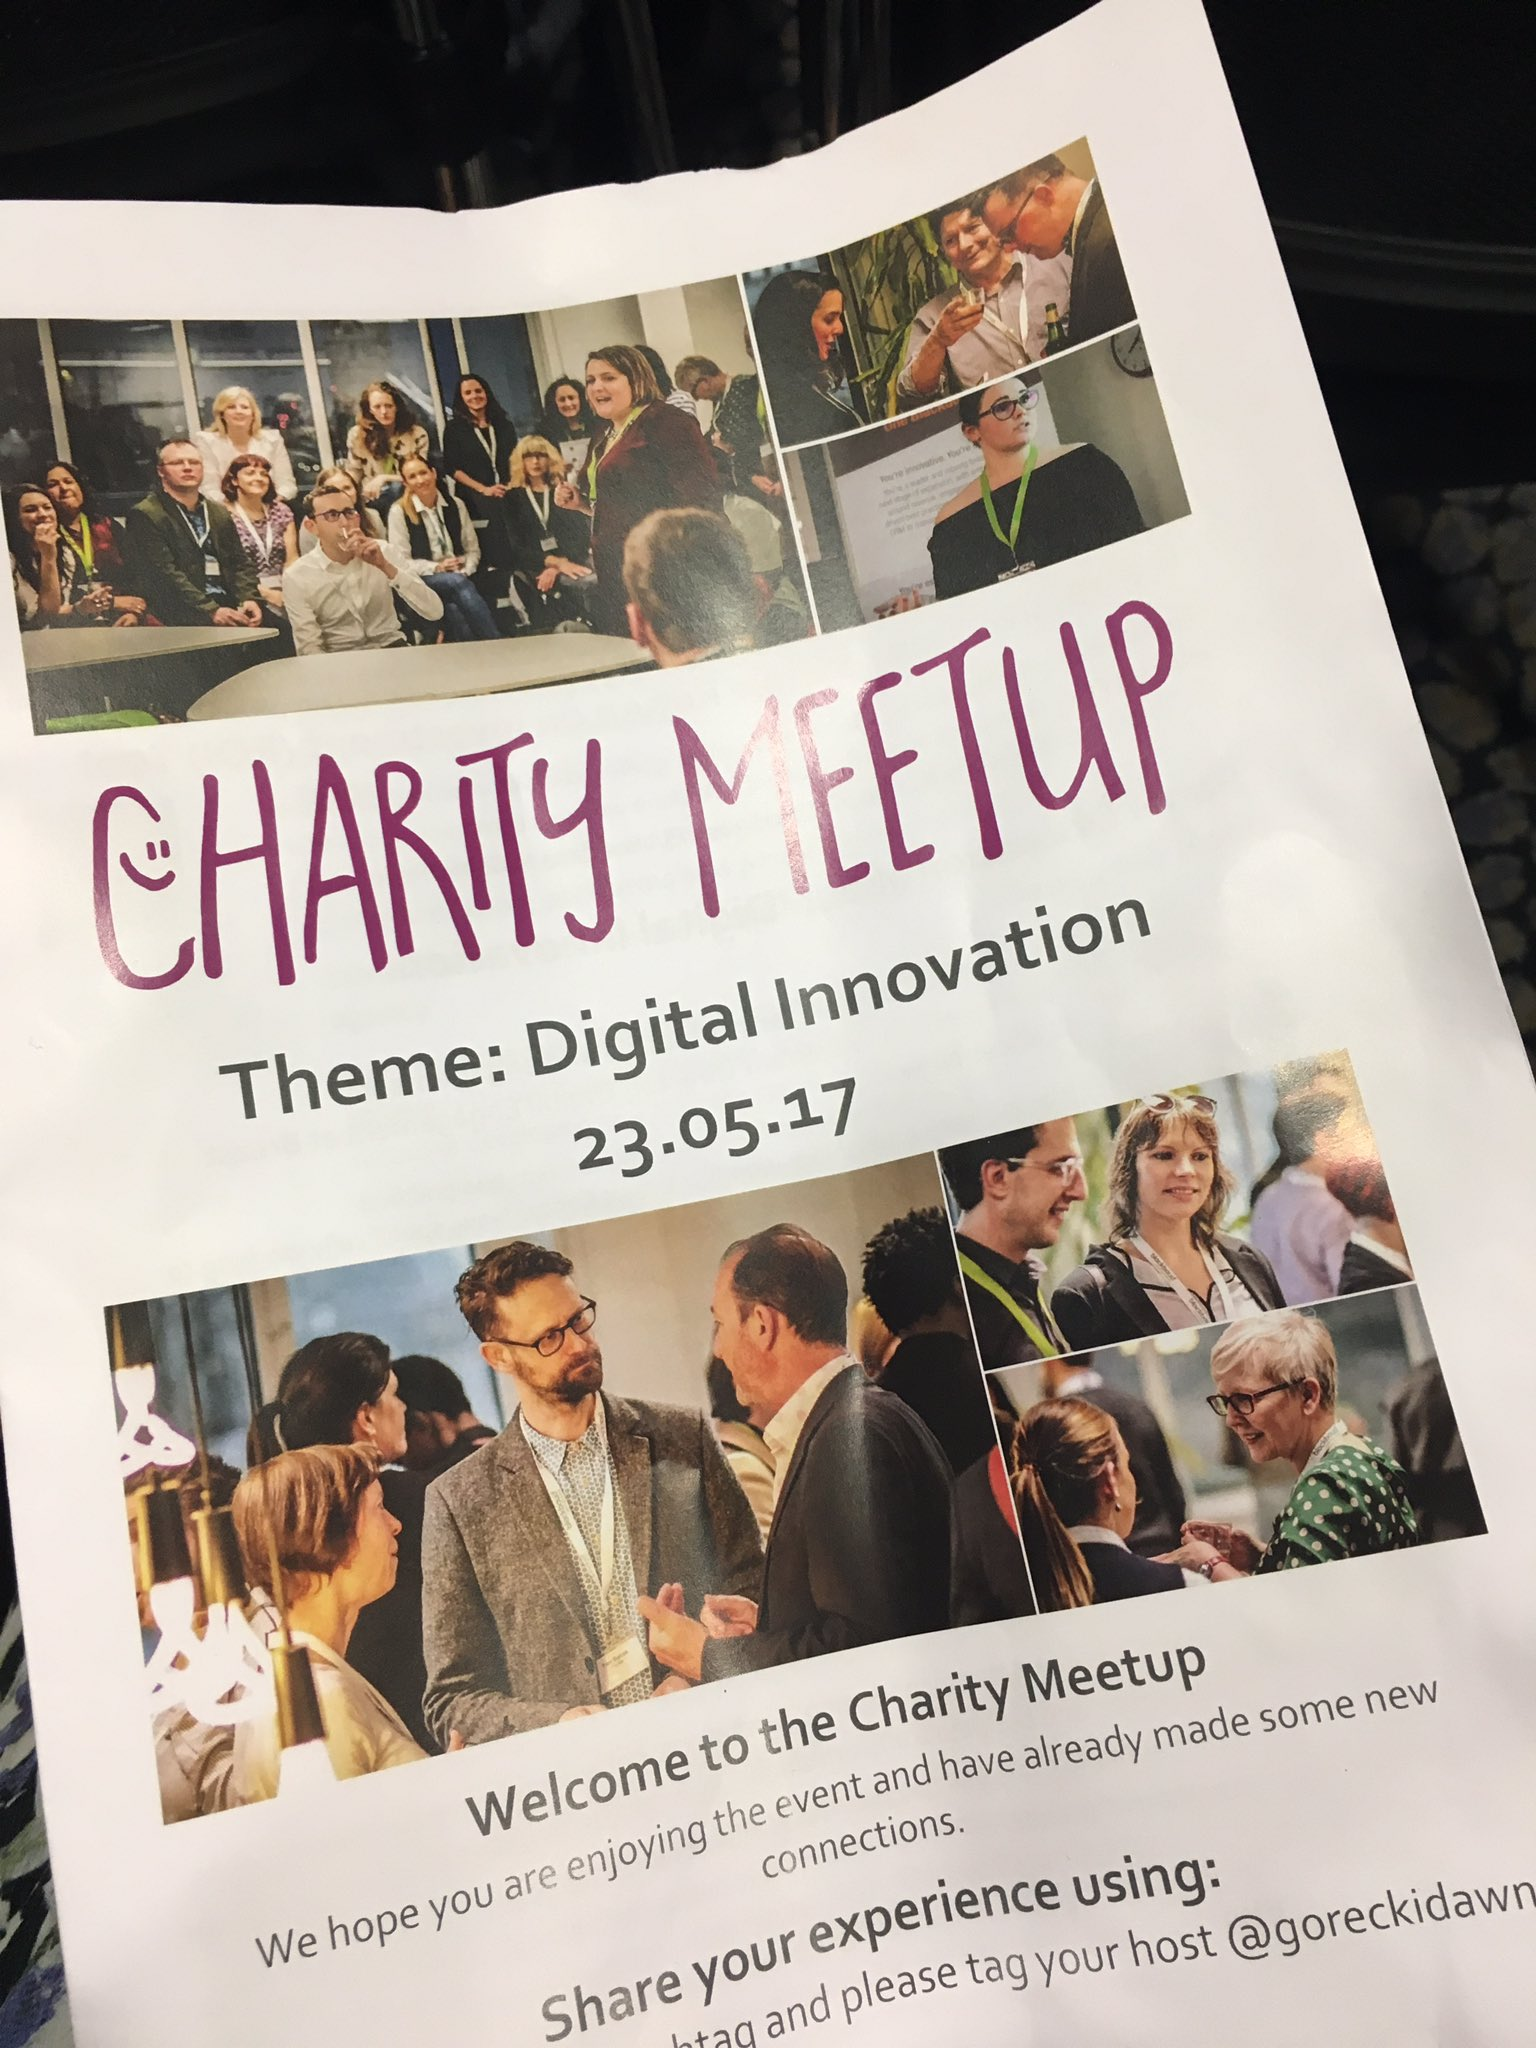 Already learnt about some fab digital tools. Another great #charitymeetup https://t.co/qhA1IcPsSn